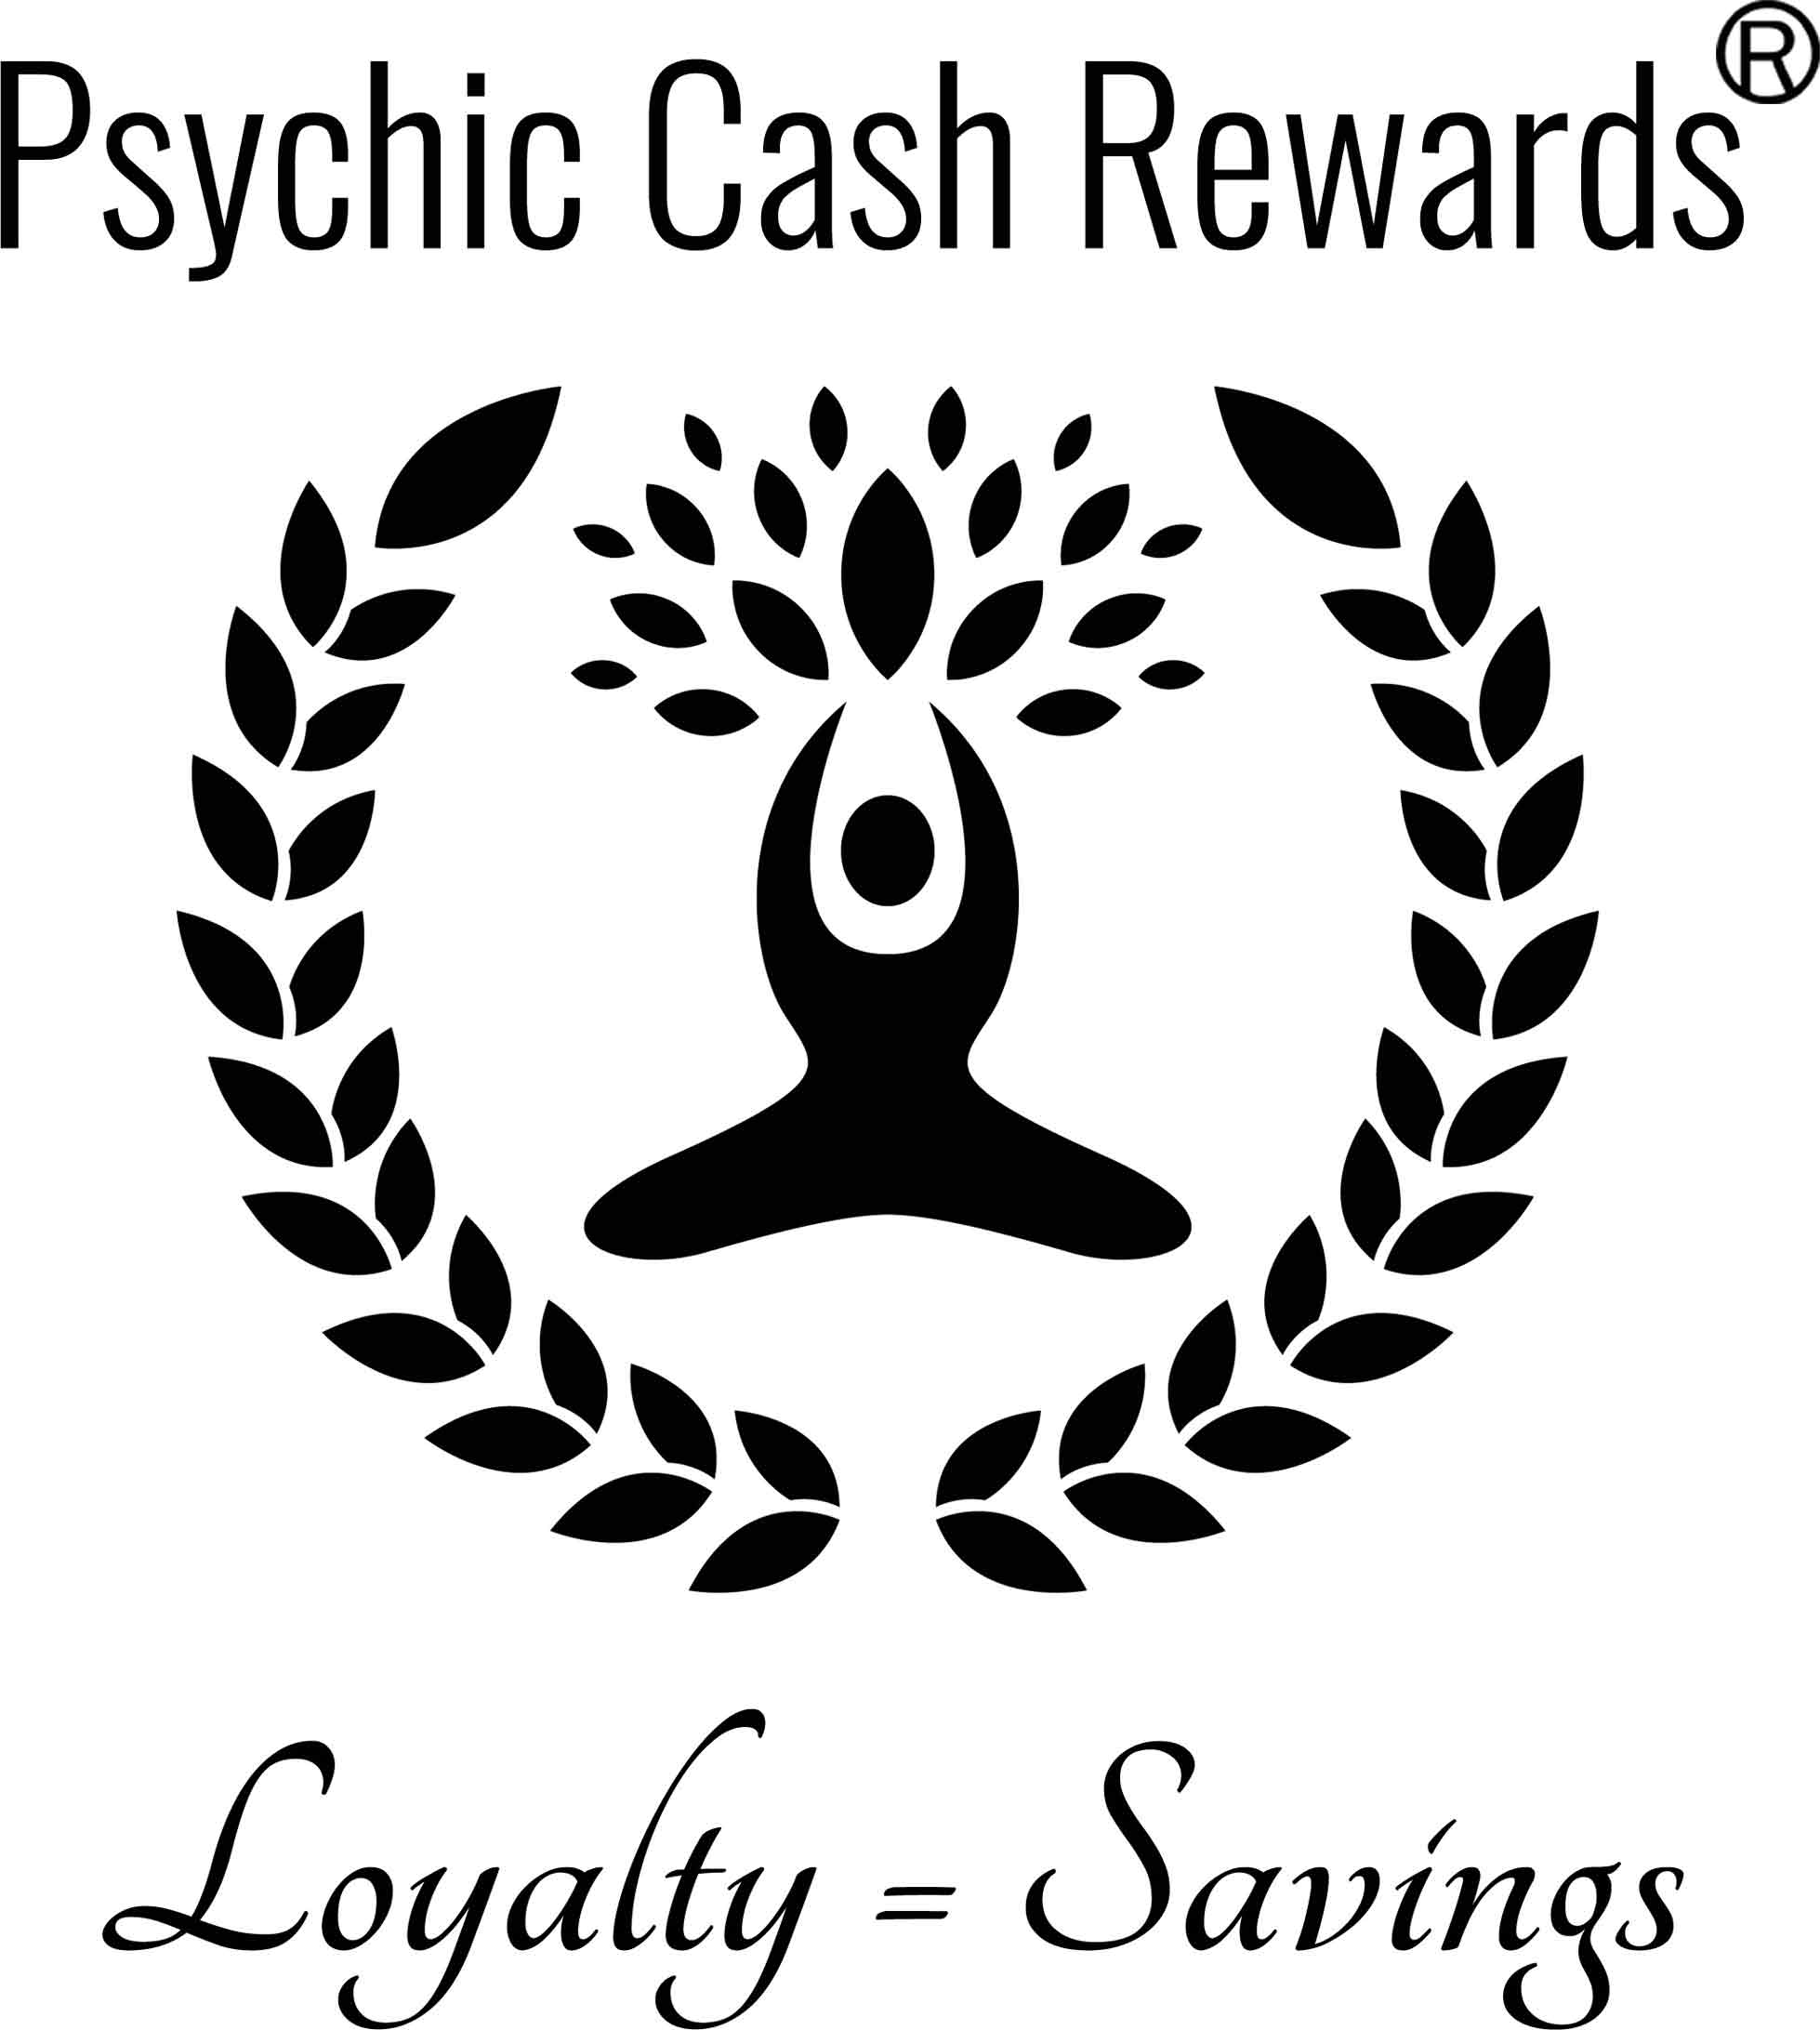 Psychic cash rewards